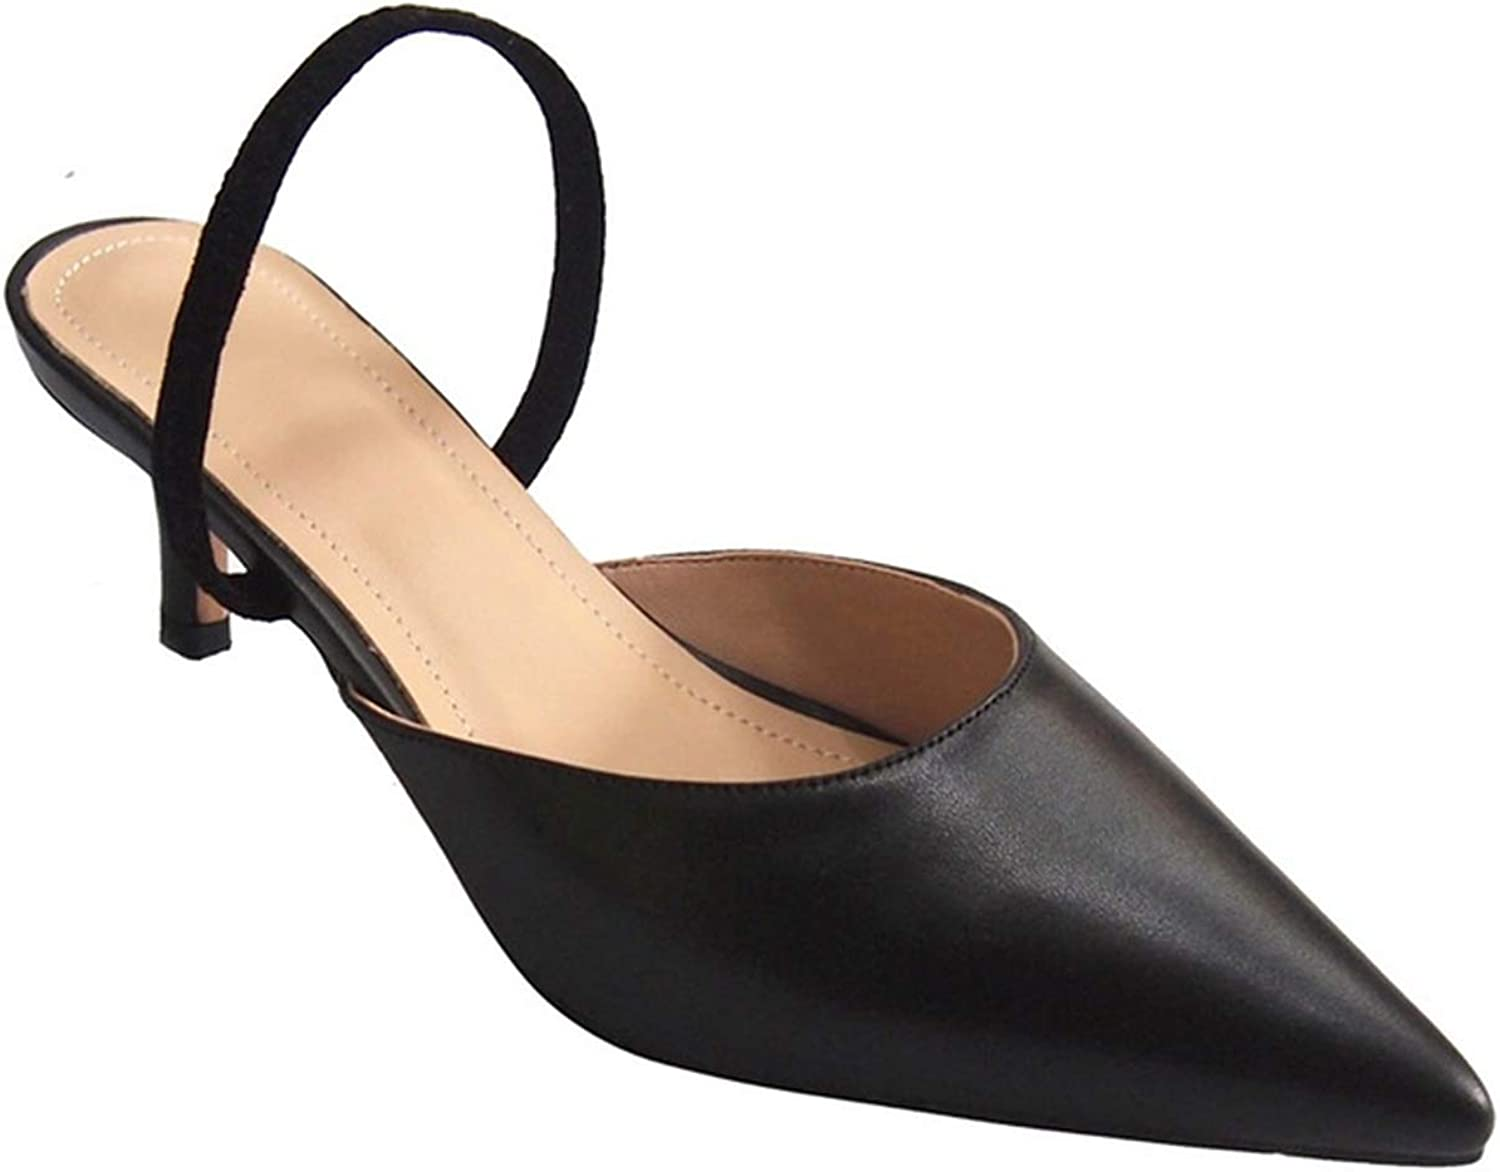 Girl21 Genuine Leather Sandals Women shoes Pointed Toe Slip On Soft Genuine High Heels shoes